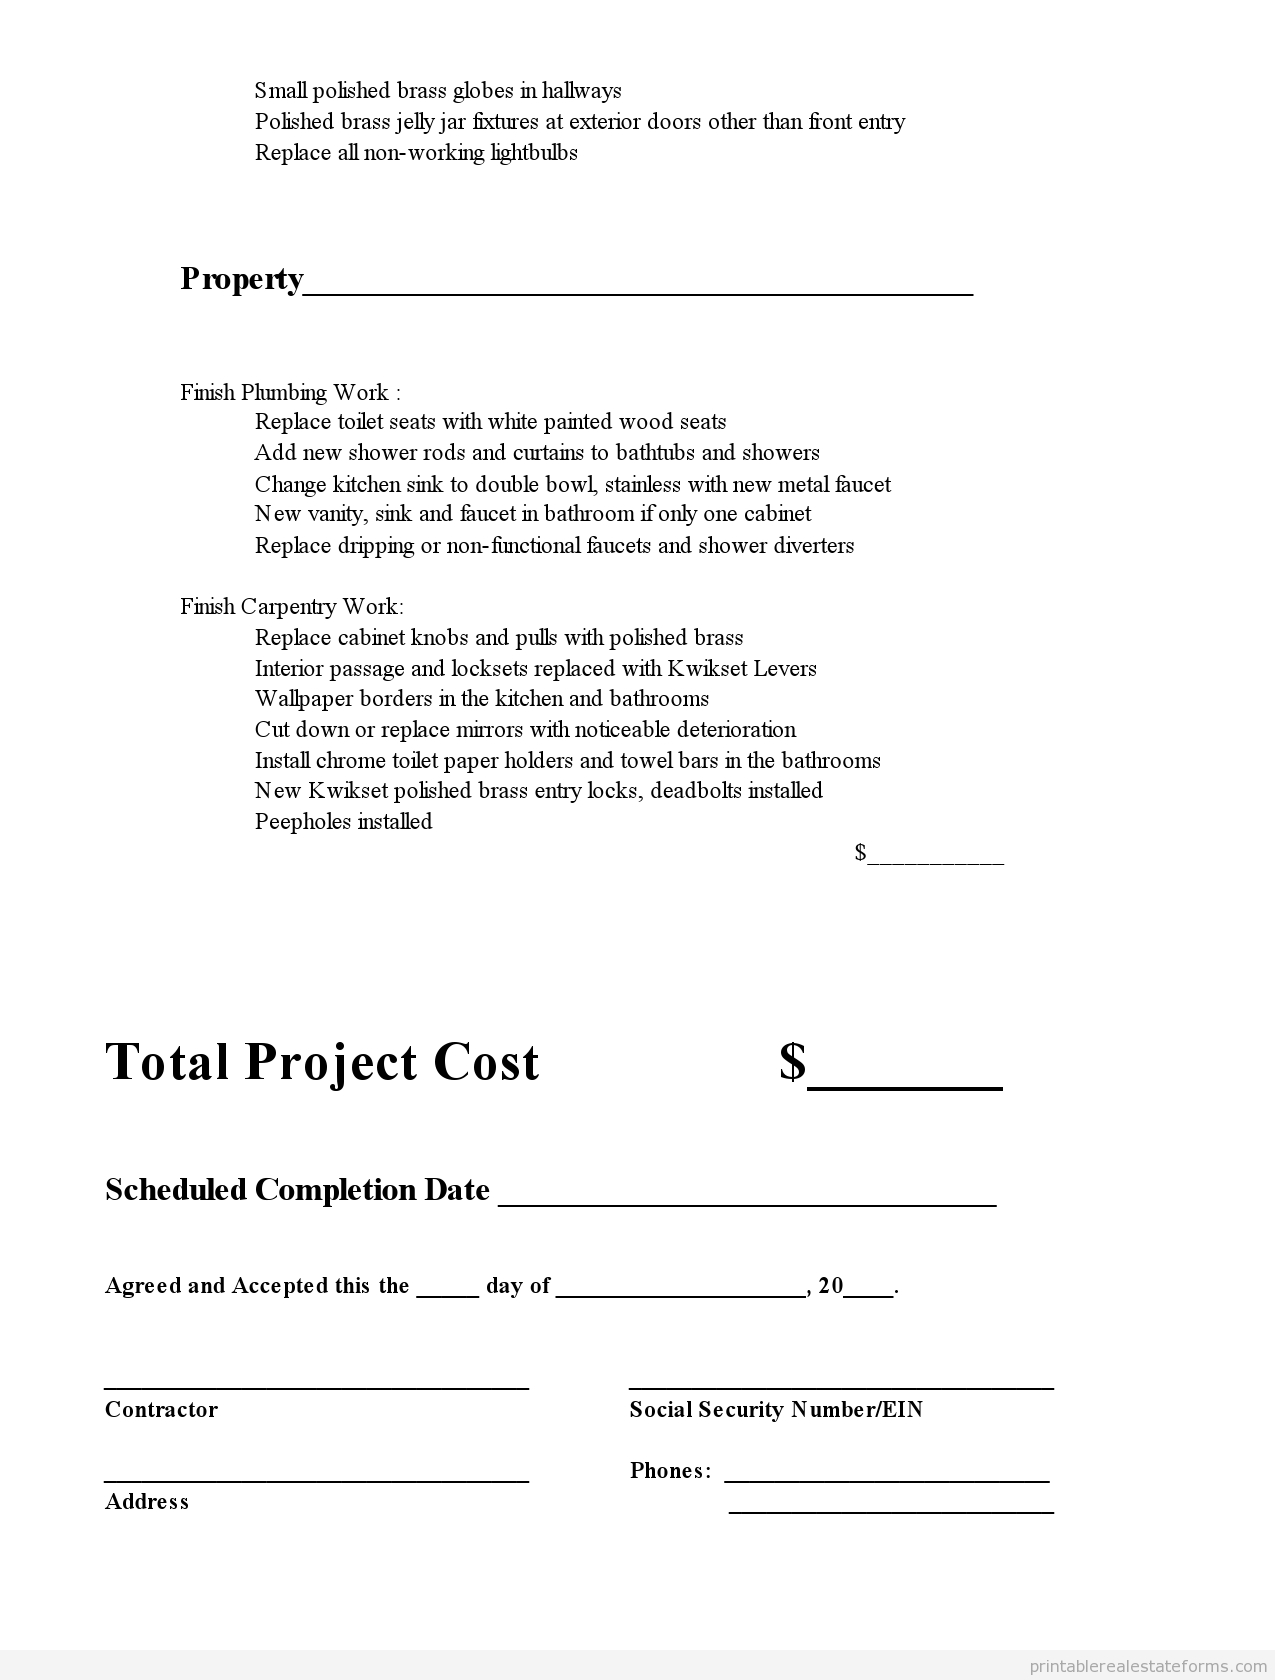 Printable Subcontractor Agreement Template 2015 | Sample Forms 2015 - Free Printable Subcontractor Agreement